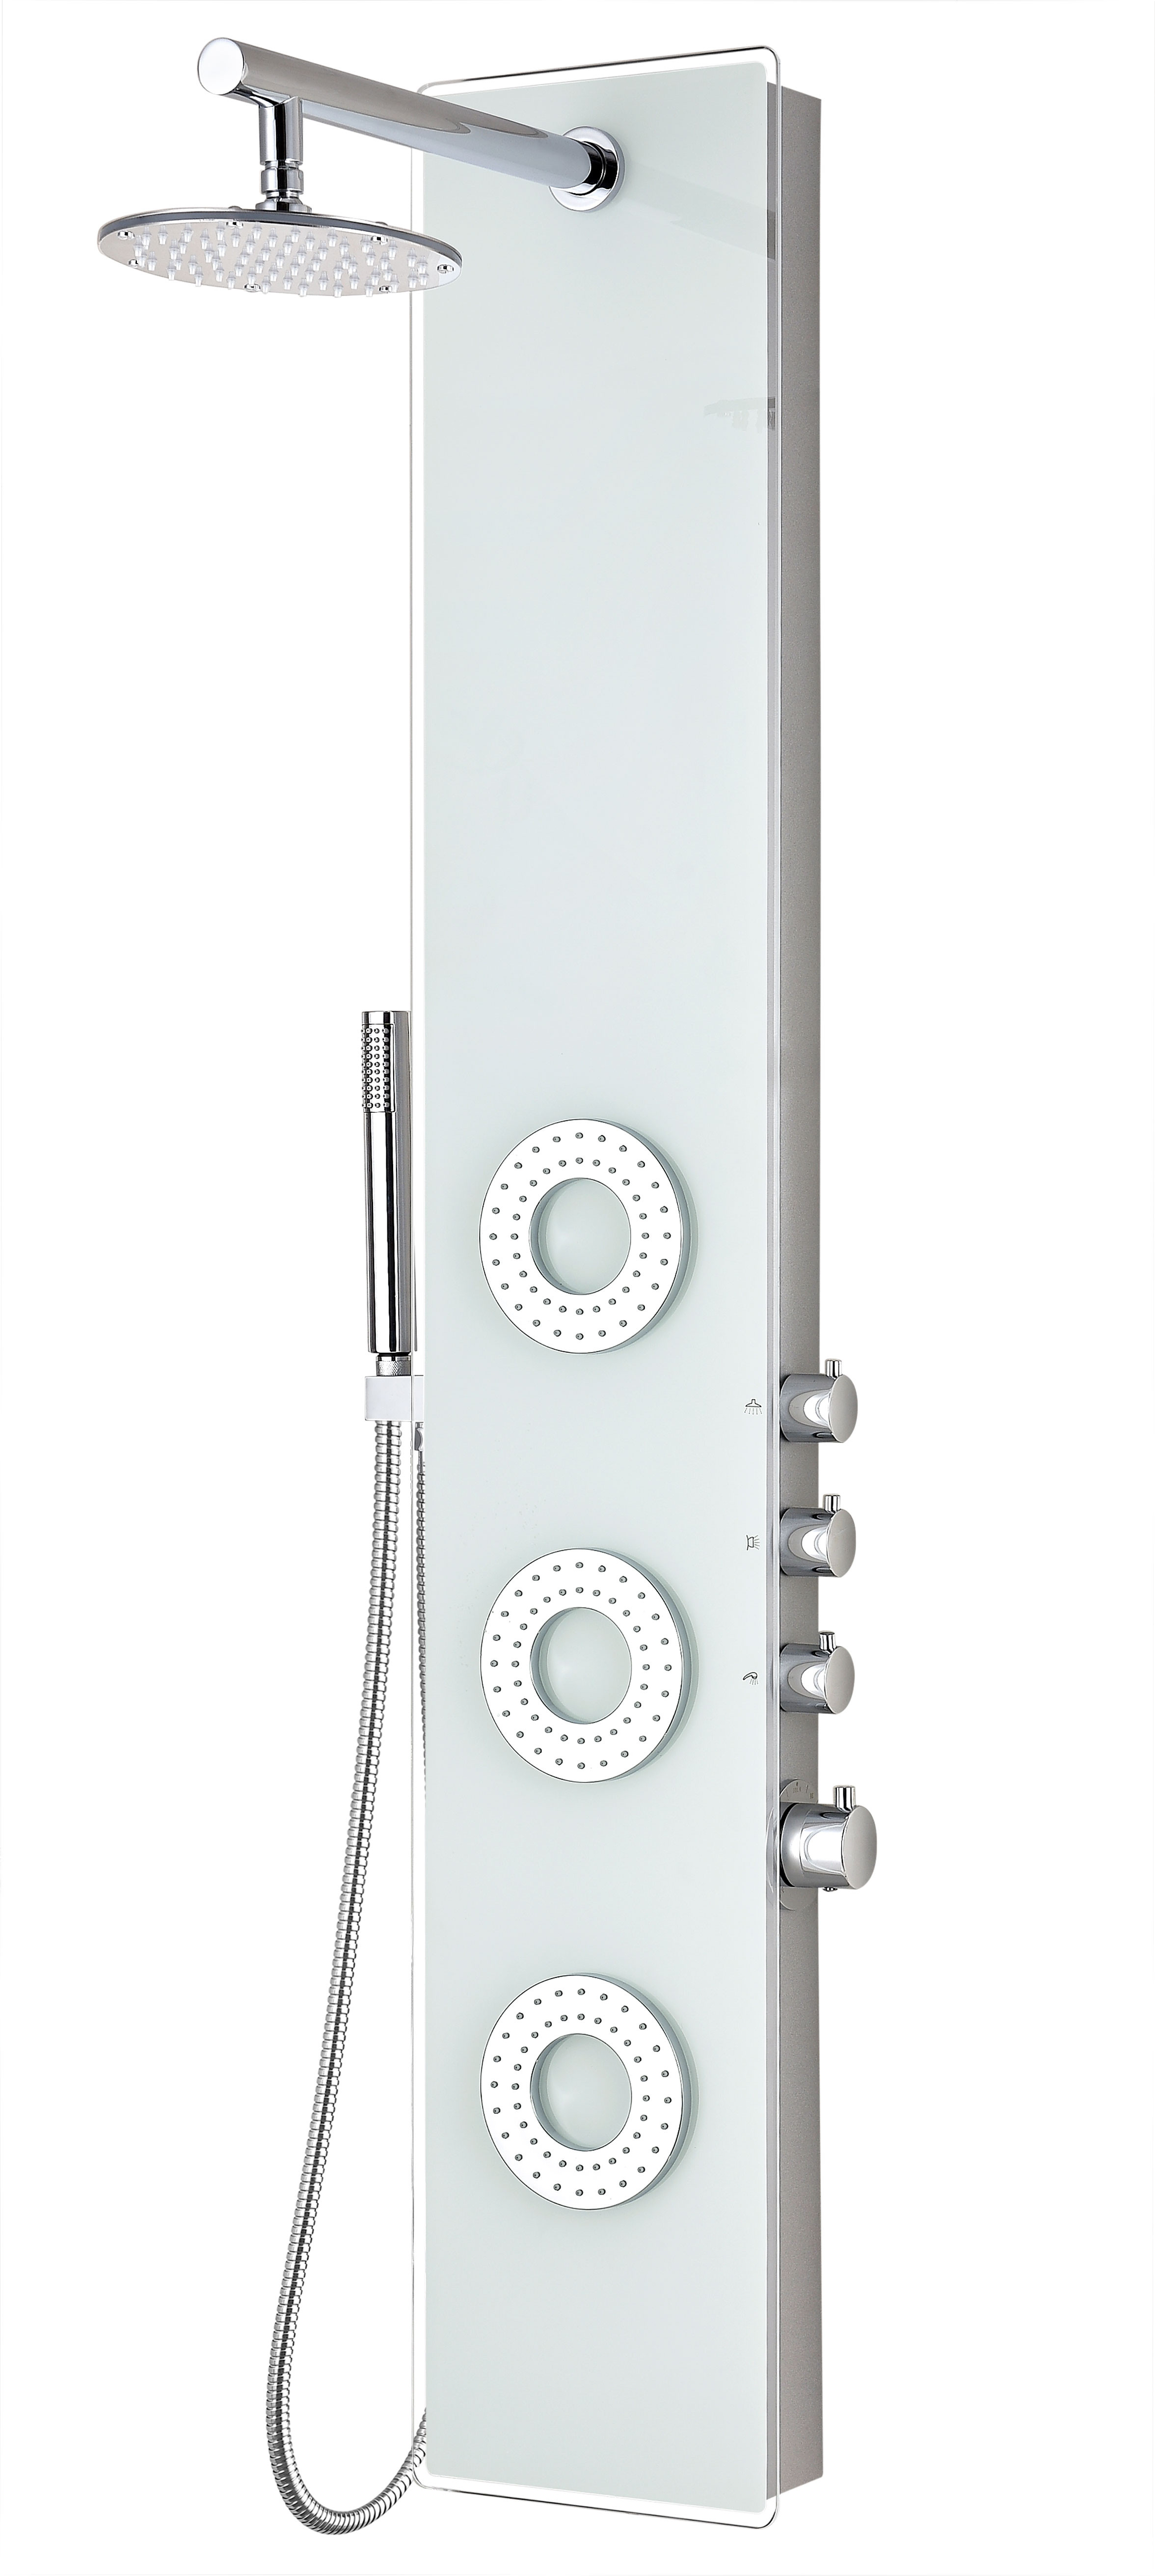 ANZZI SP-AZ031 Lynn Shower Panel With Rain Shower and Spray Wand In White